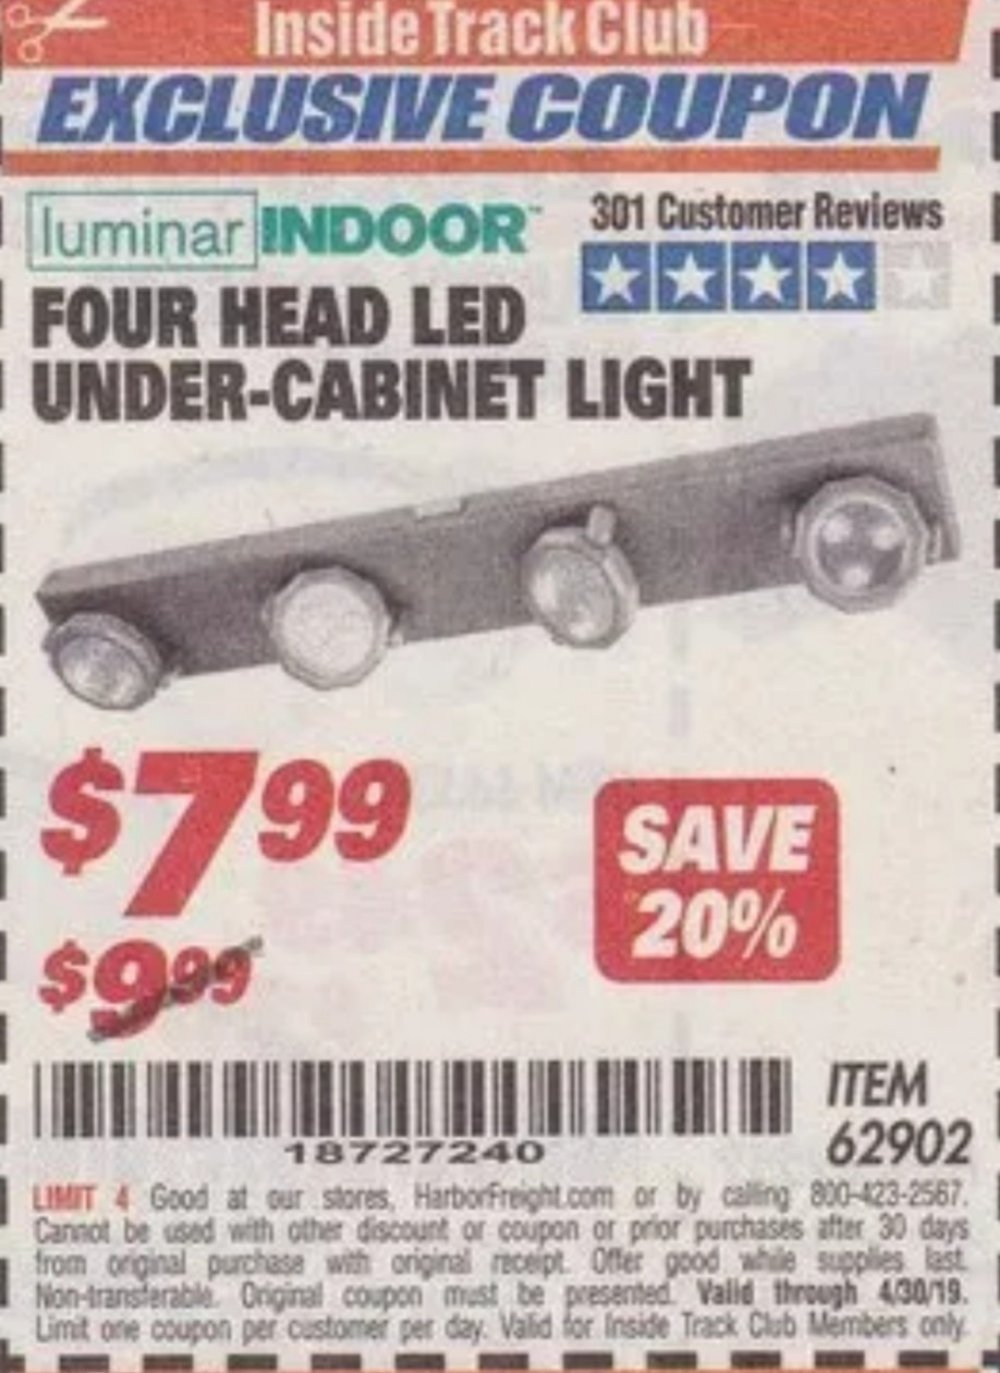 Harbor Freight Coupon, HF Coupons - 4 Head Led Under-cabinet Light